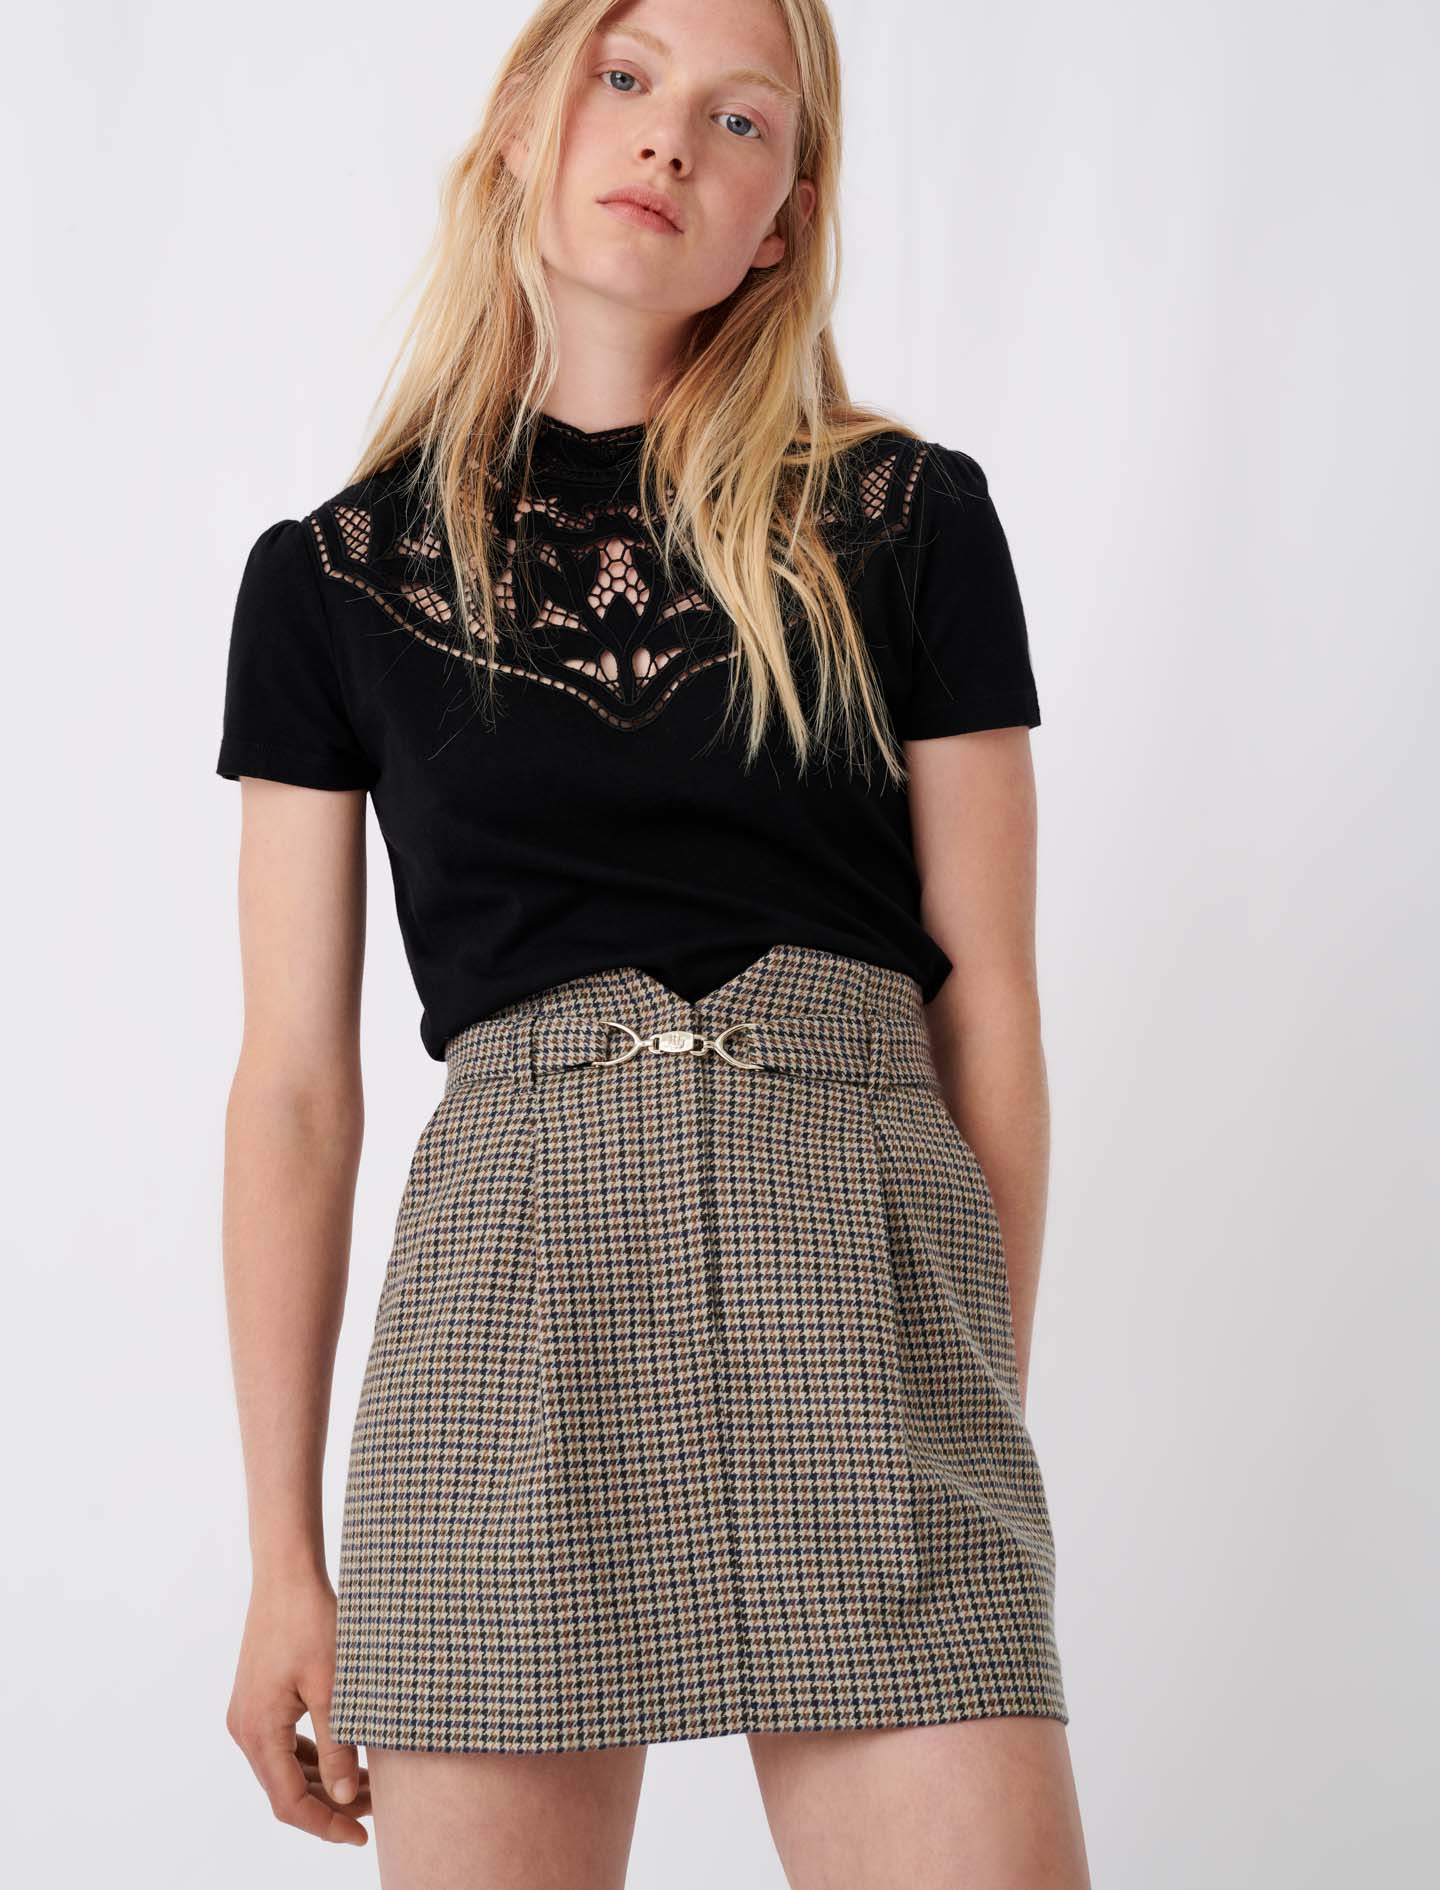 T-shirt with lace collar details - Black